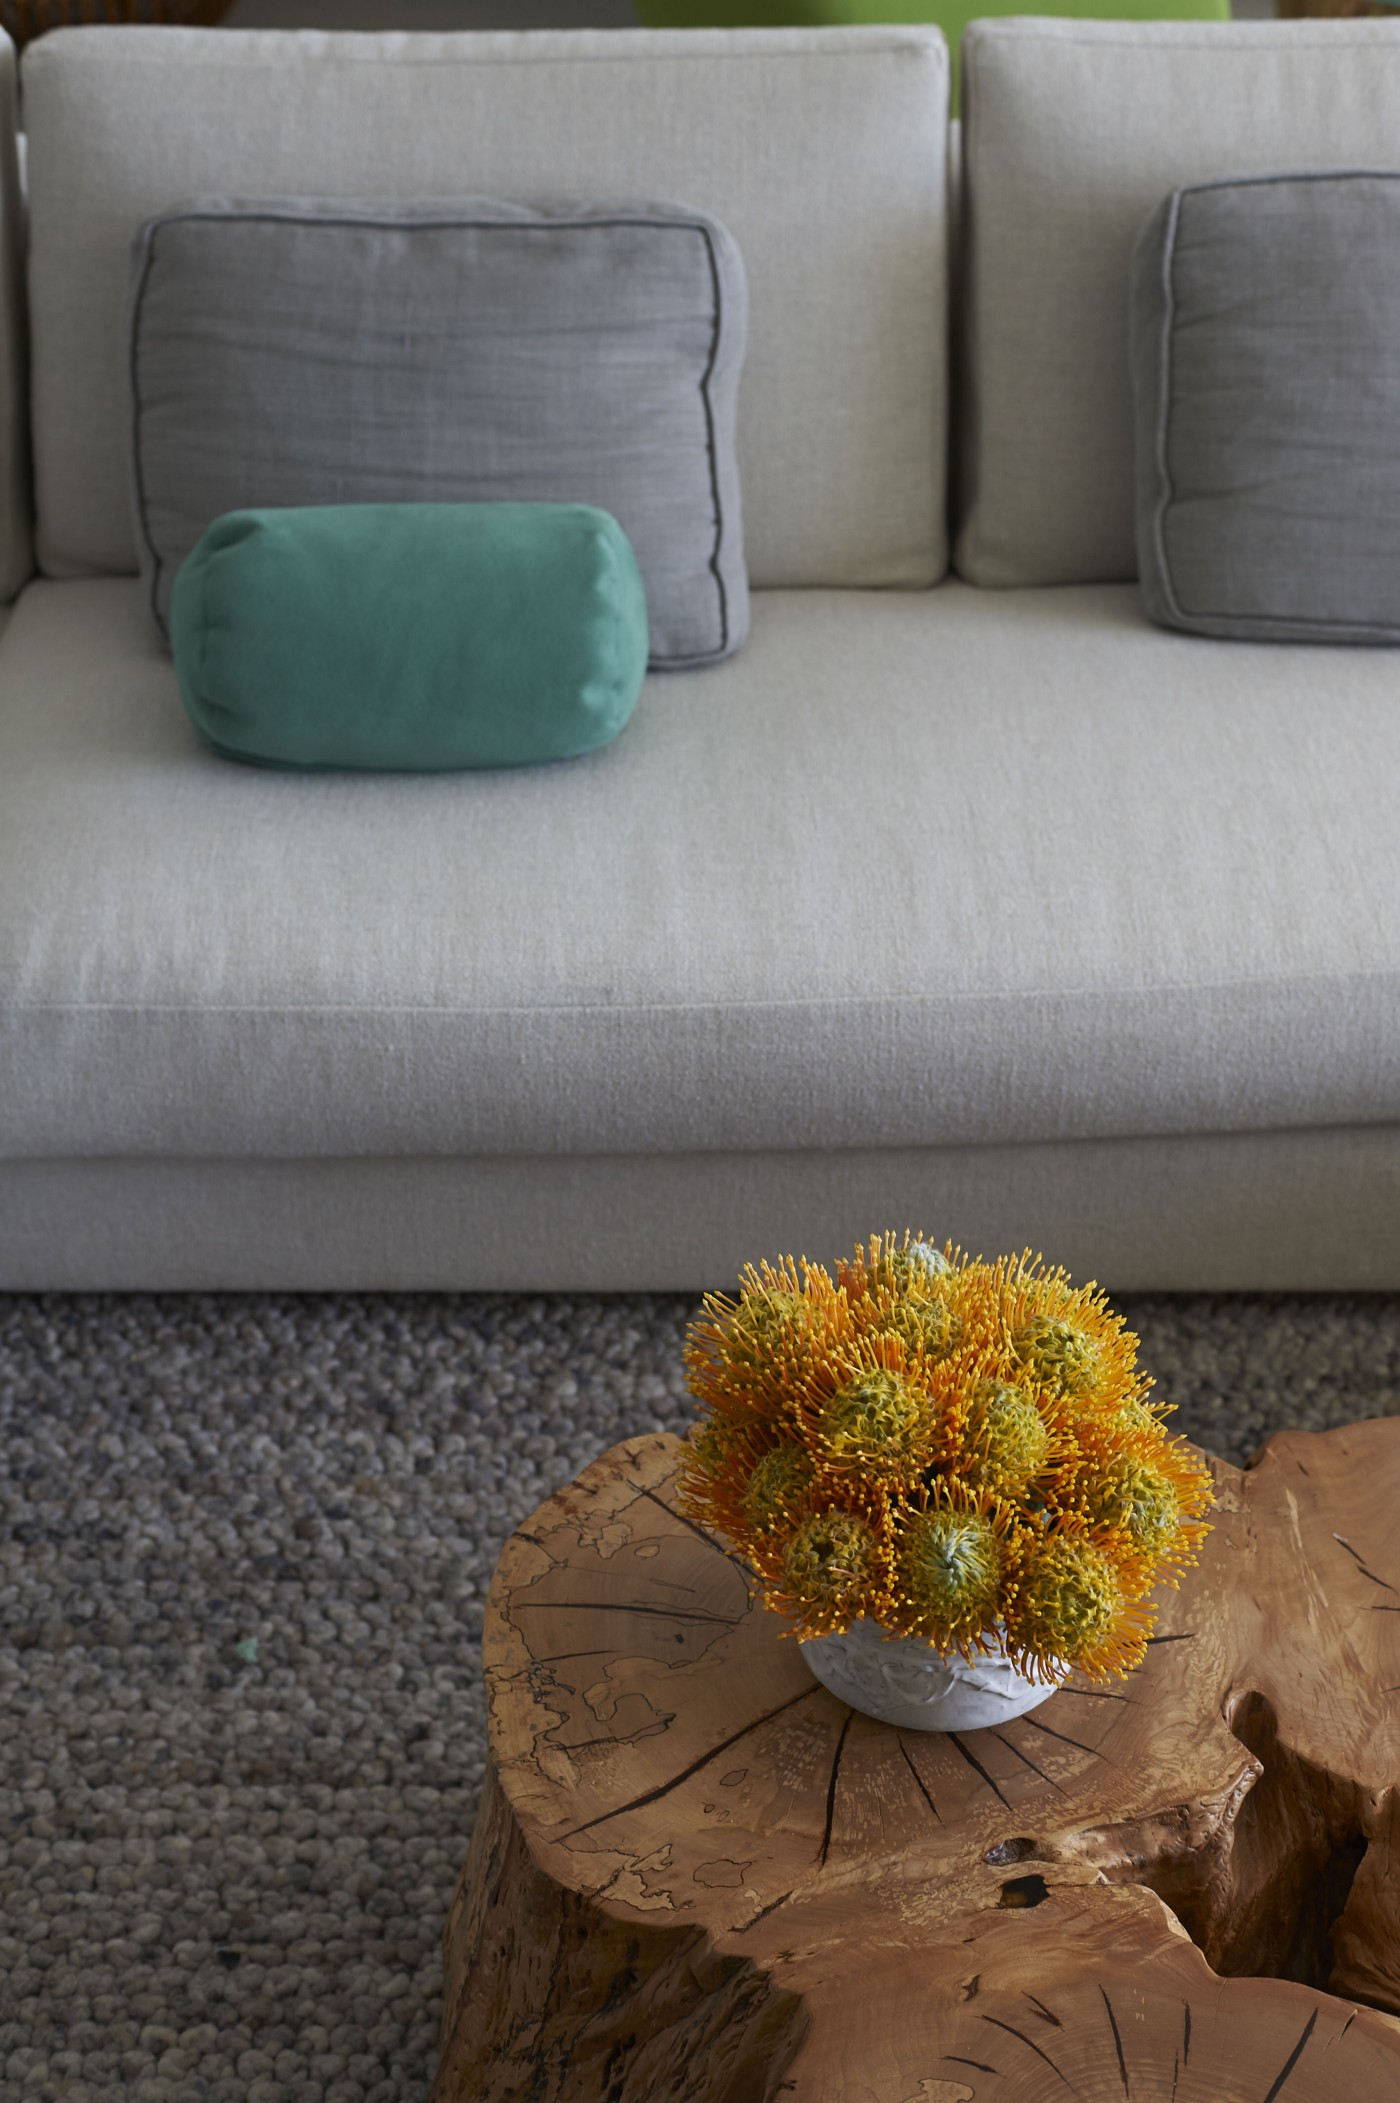 A grey sofa with teal pillows sitting on a grey rug.